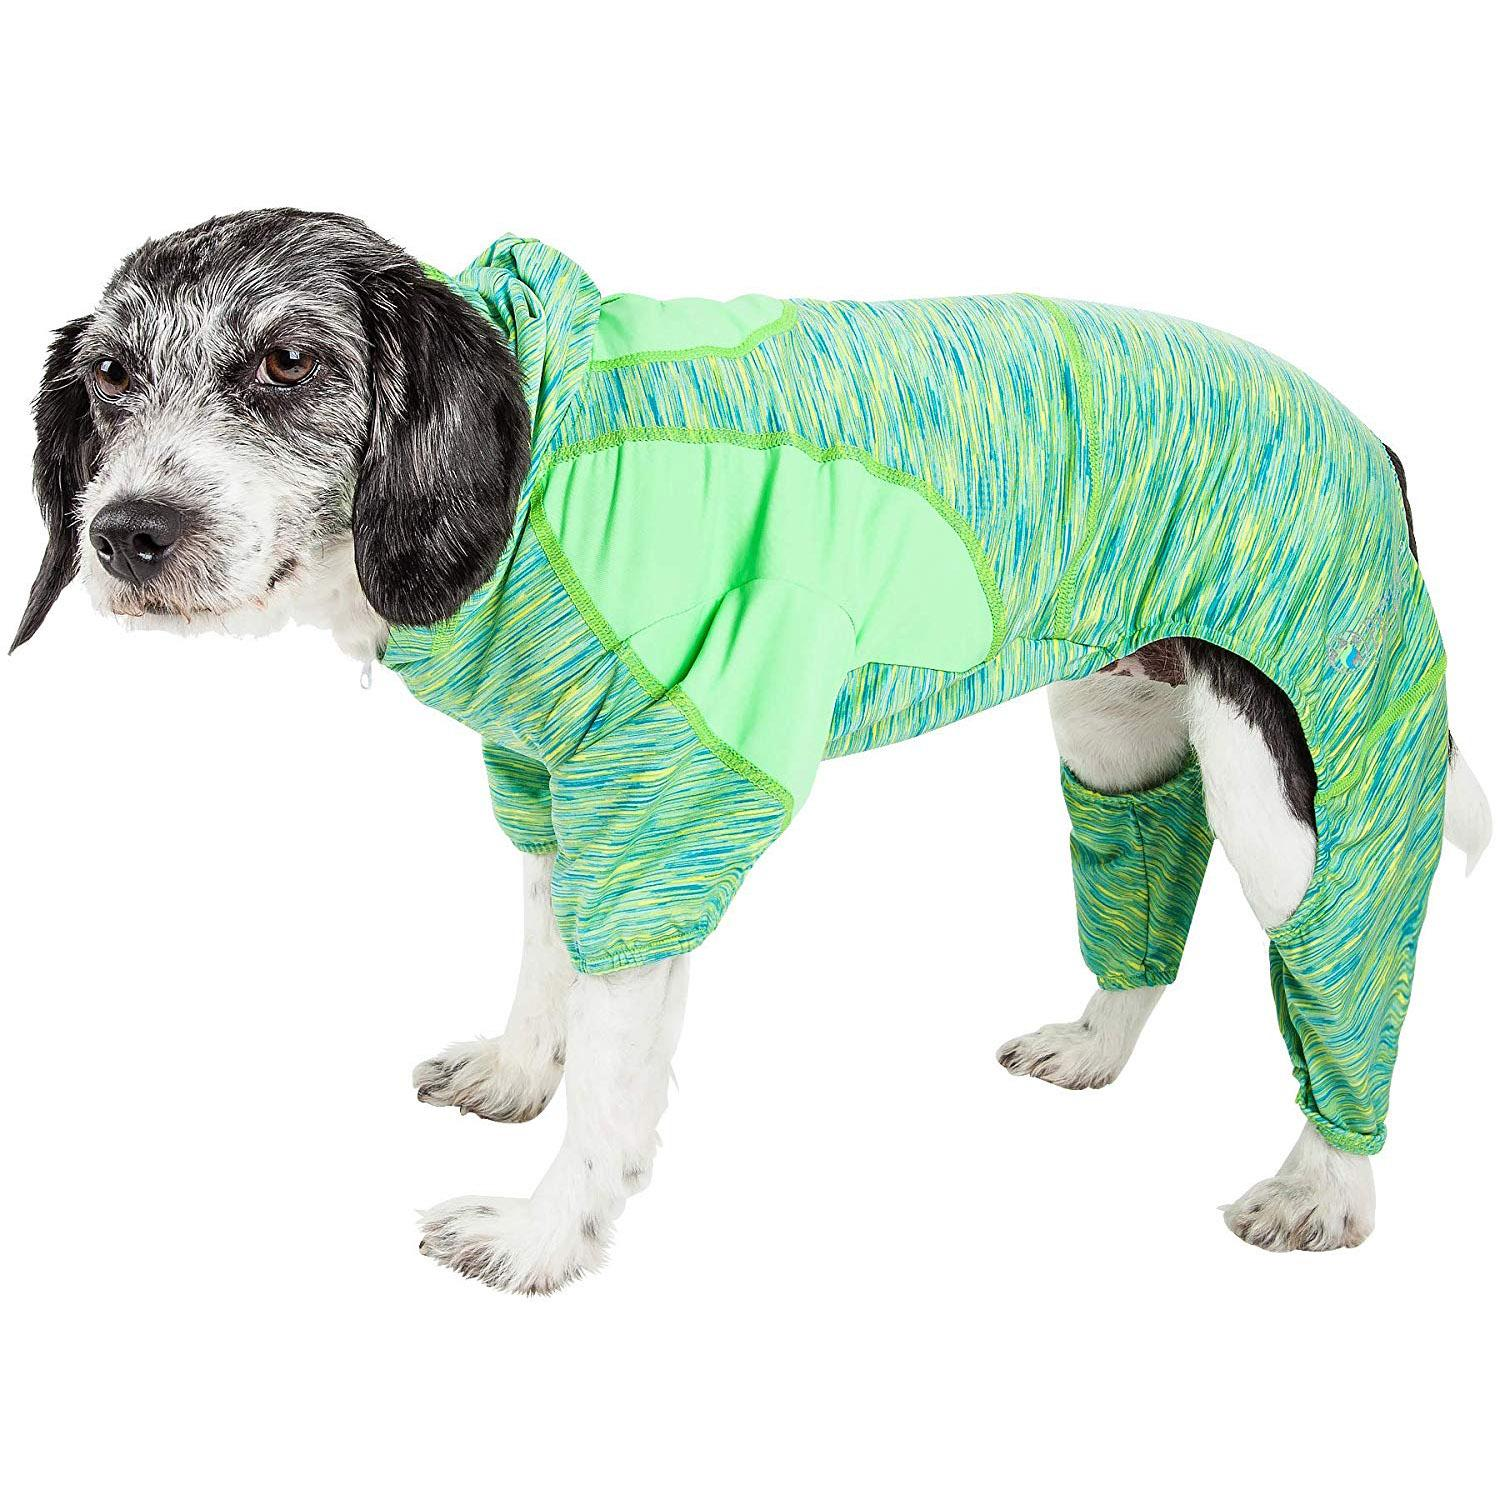 Pet Life ACTIVE 'Downward Dog' Performance Full Body Warm-Up Dog Hoodie - Green